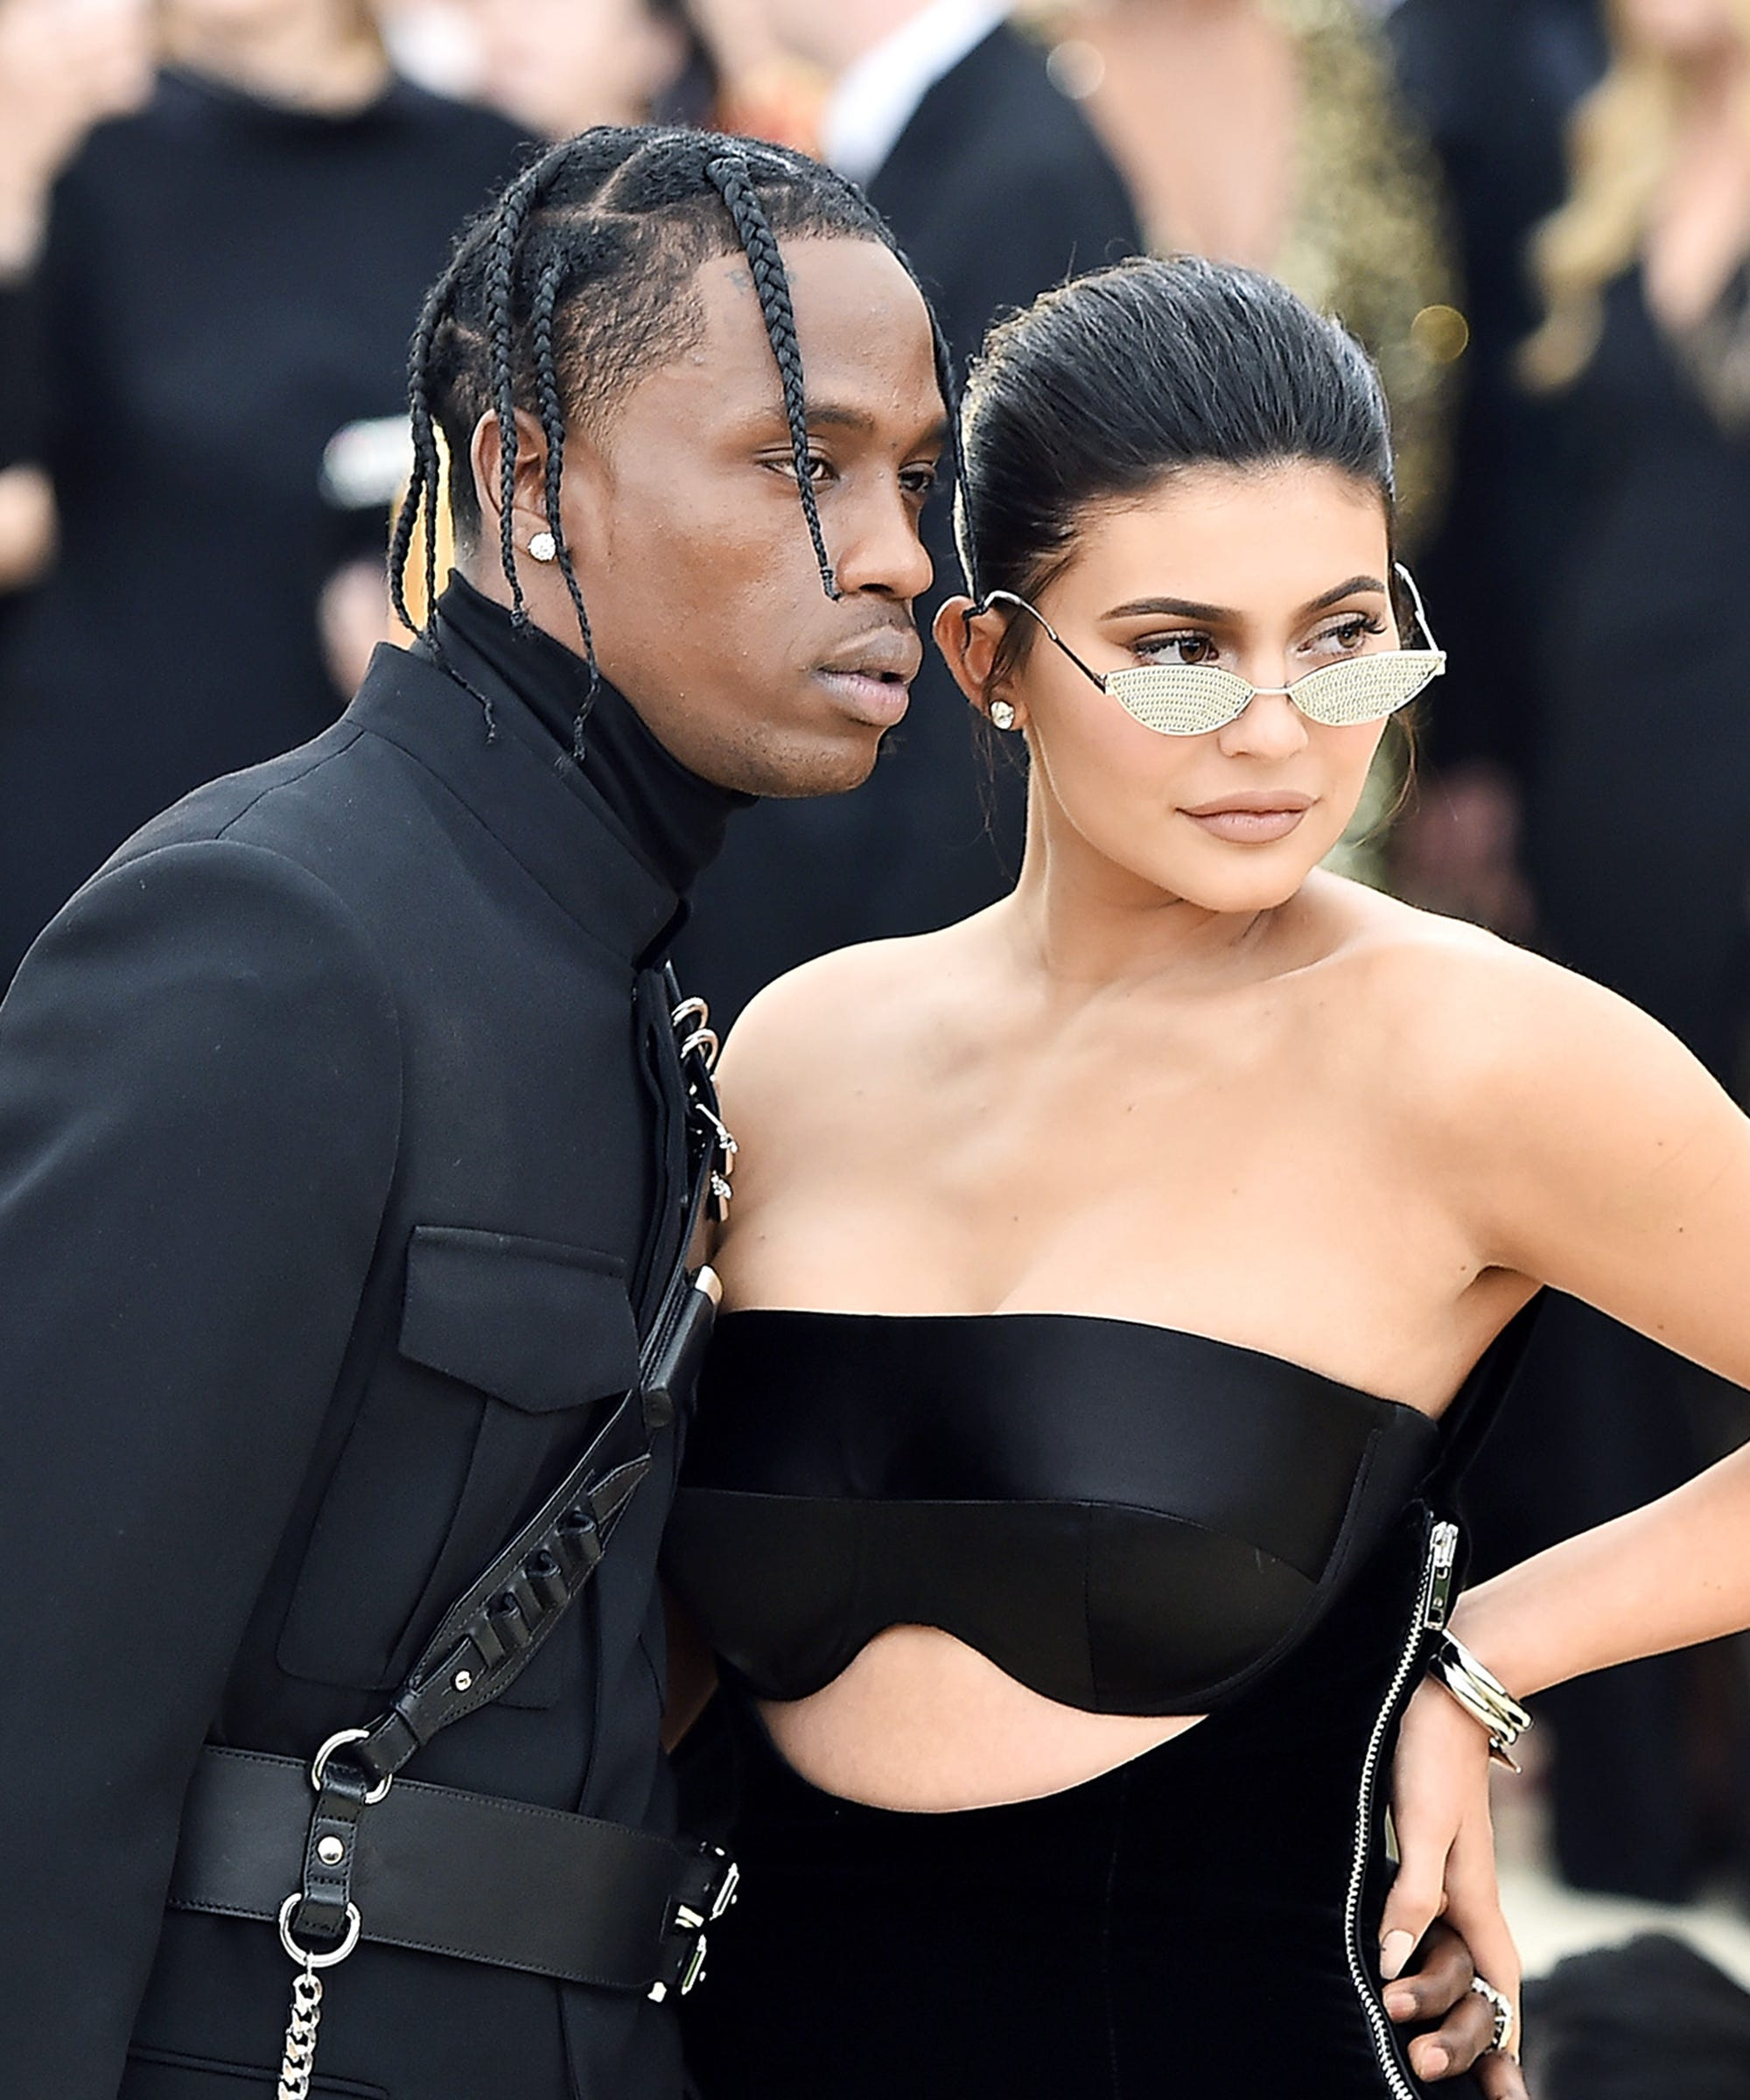 Travis Scott & Kylie Jenner Are Ready For The Iron Throne, Thank You Very Much